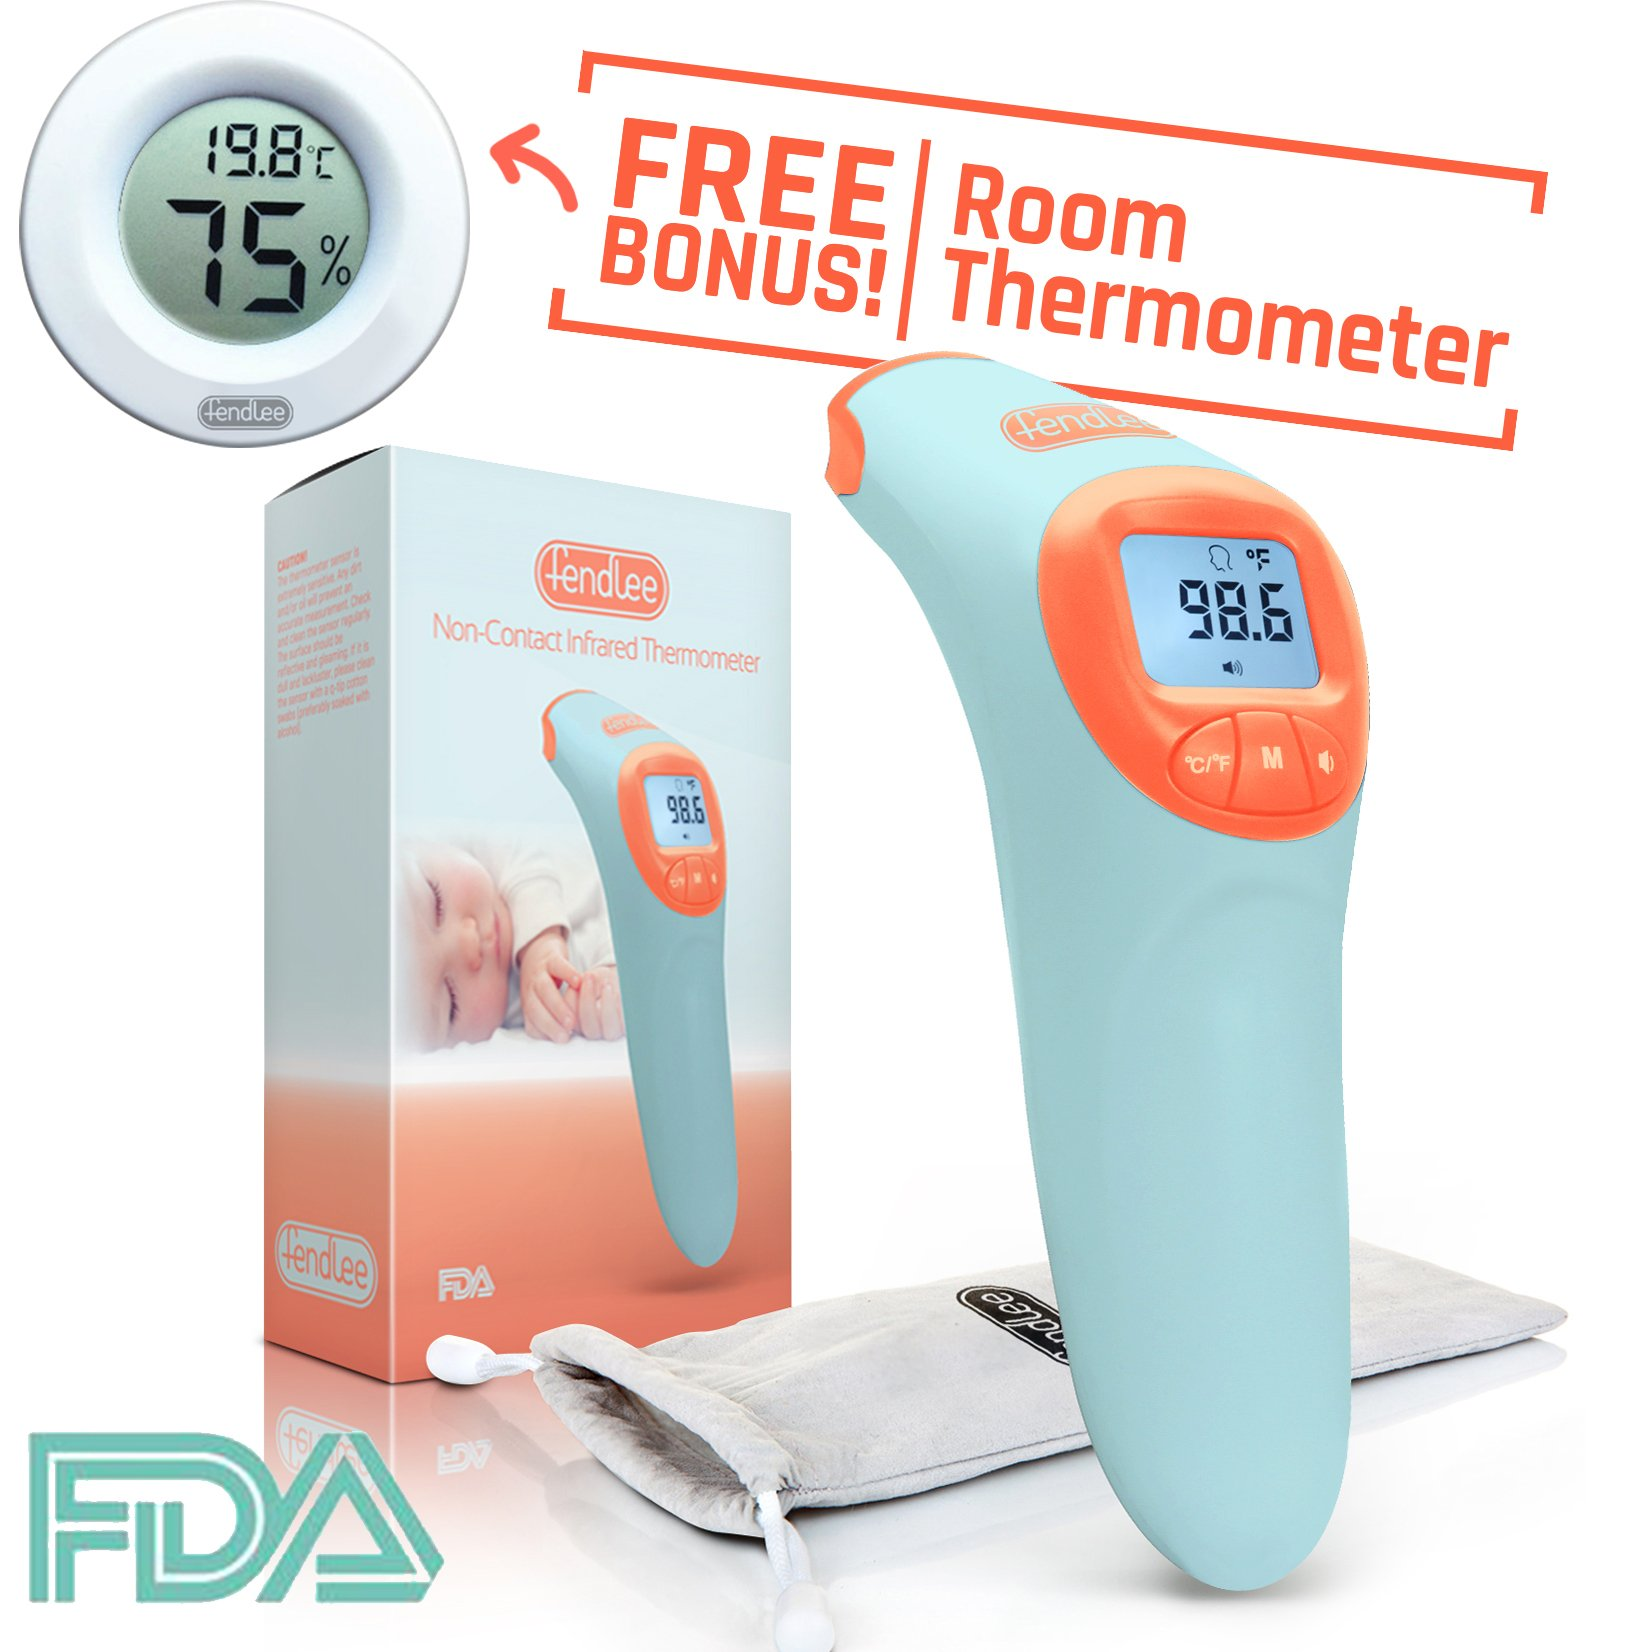 Fendlee Digital Infrared Non-Contact Forehead Thermometer Suitable for Infants Toddlers and Adults Instant & Accurate For Home or Pediatric Use Celsius or Fahrenheit FDA & CE Approved Blue